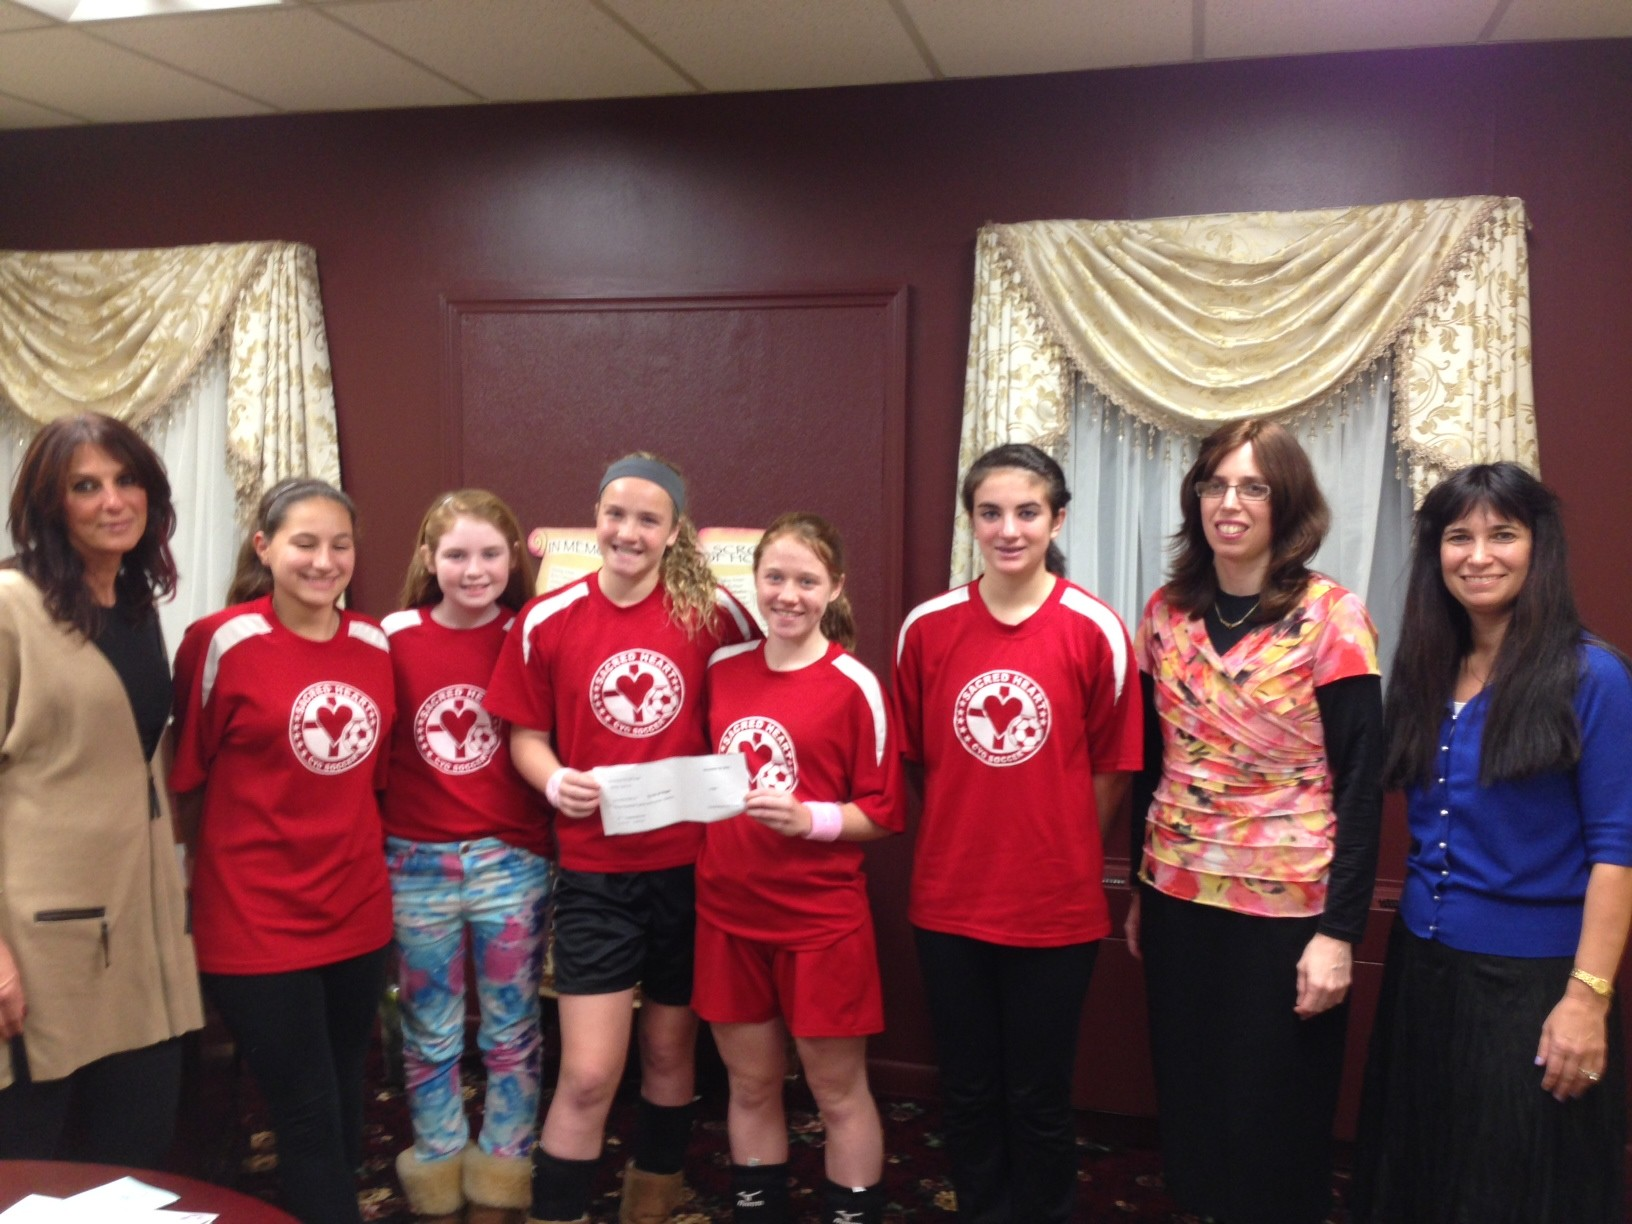 In October, the Sacred Heart girls raised money for Circle of Hope, a breast cancer support group. Above were, from left, Circle of Hope co-founder Lisa Fessler, Sacred Heart team members Allie Fiederlein, Elizabeth Collins, Tara Hagerty, Annie Coogan and Alexandra Brinton, Chanie Kramer, Chabad's program director, and Michele Krebs Muscovitz, Ciricle of Hope's coordinator.